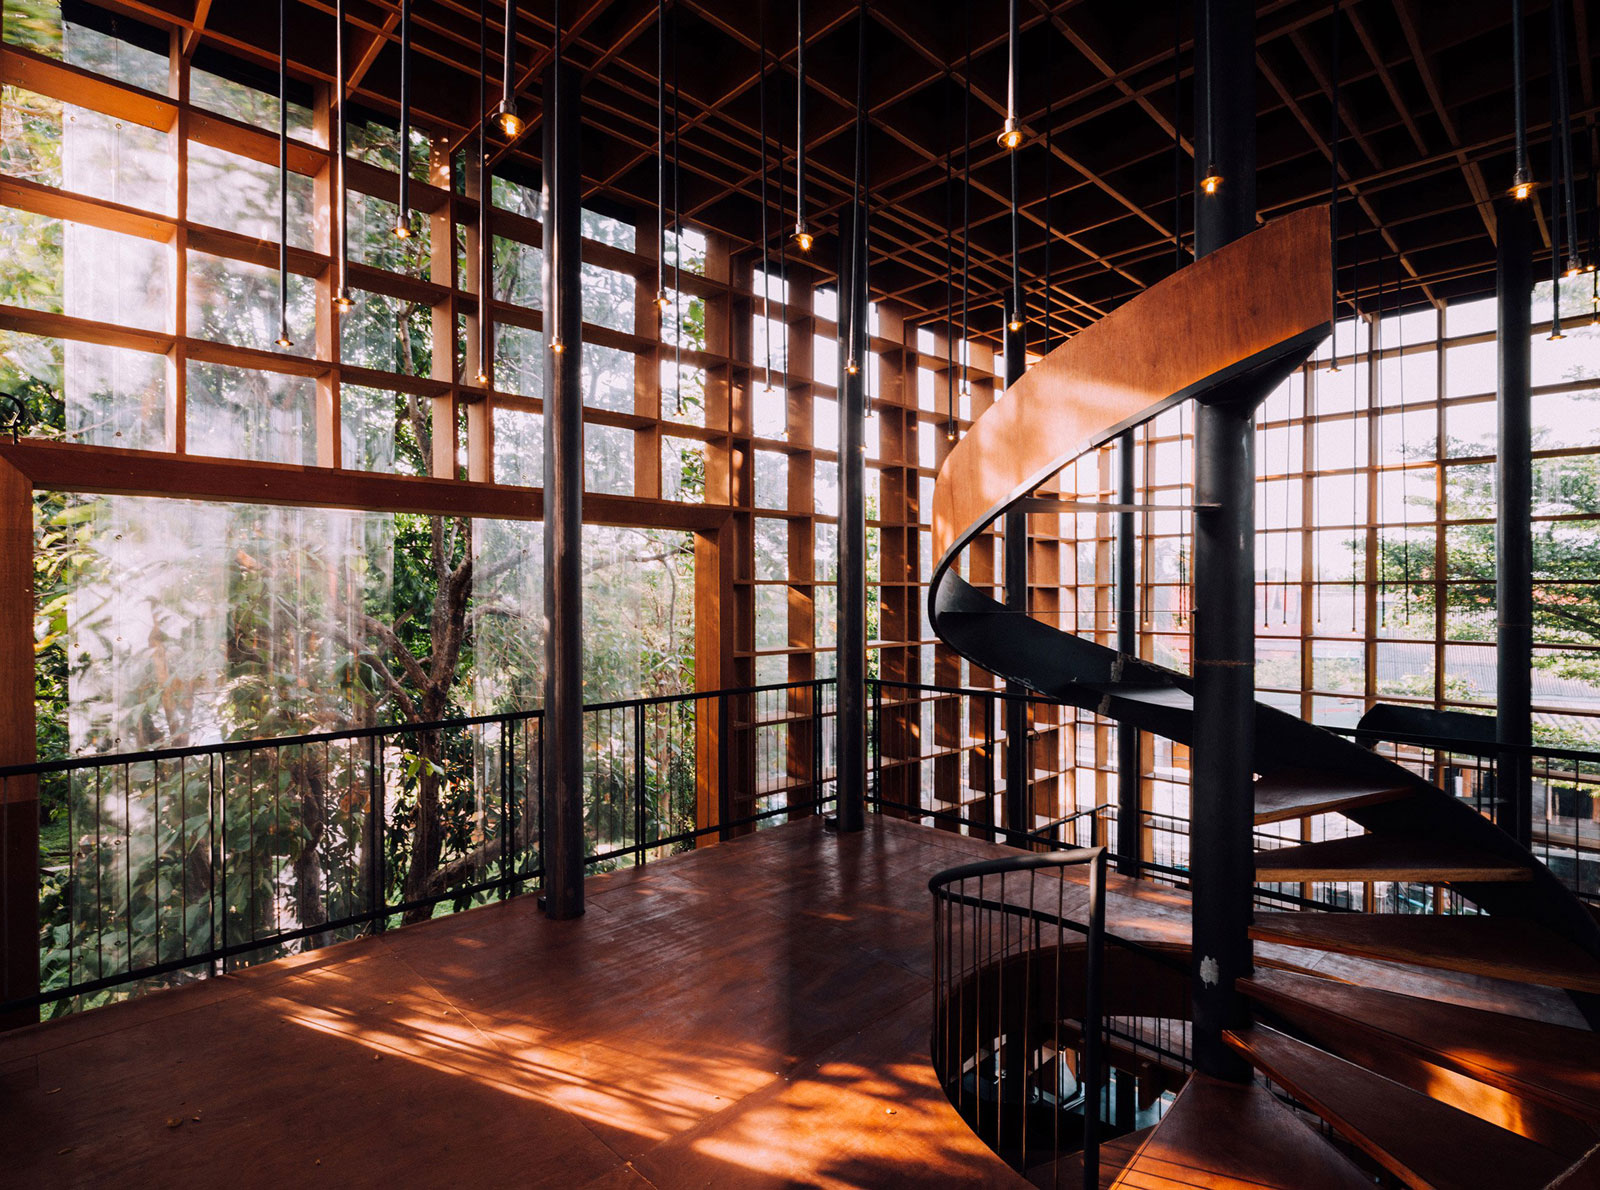 wine-bangkok-project-studio-architecture-public-leisure-thailand-_dezeen_2364_col_18